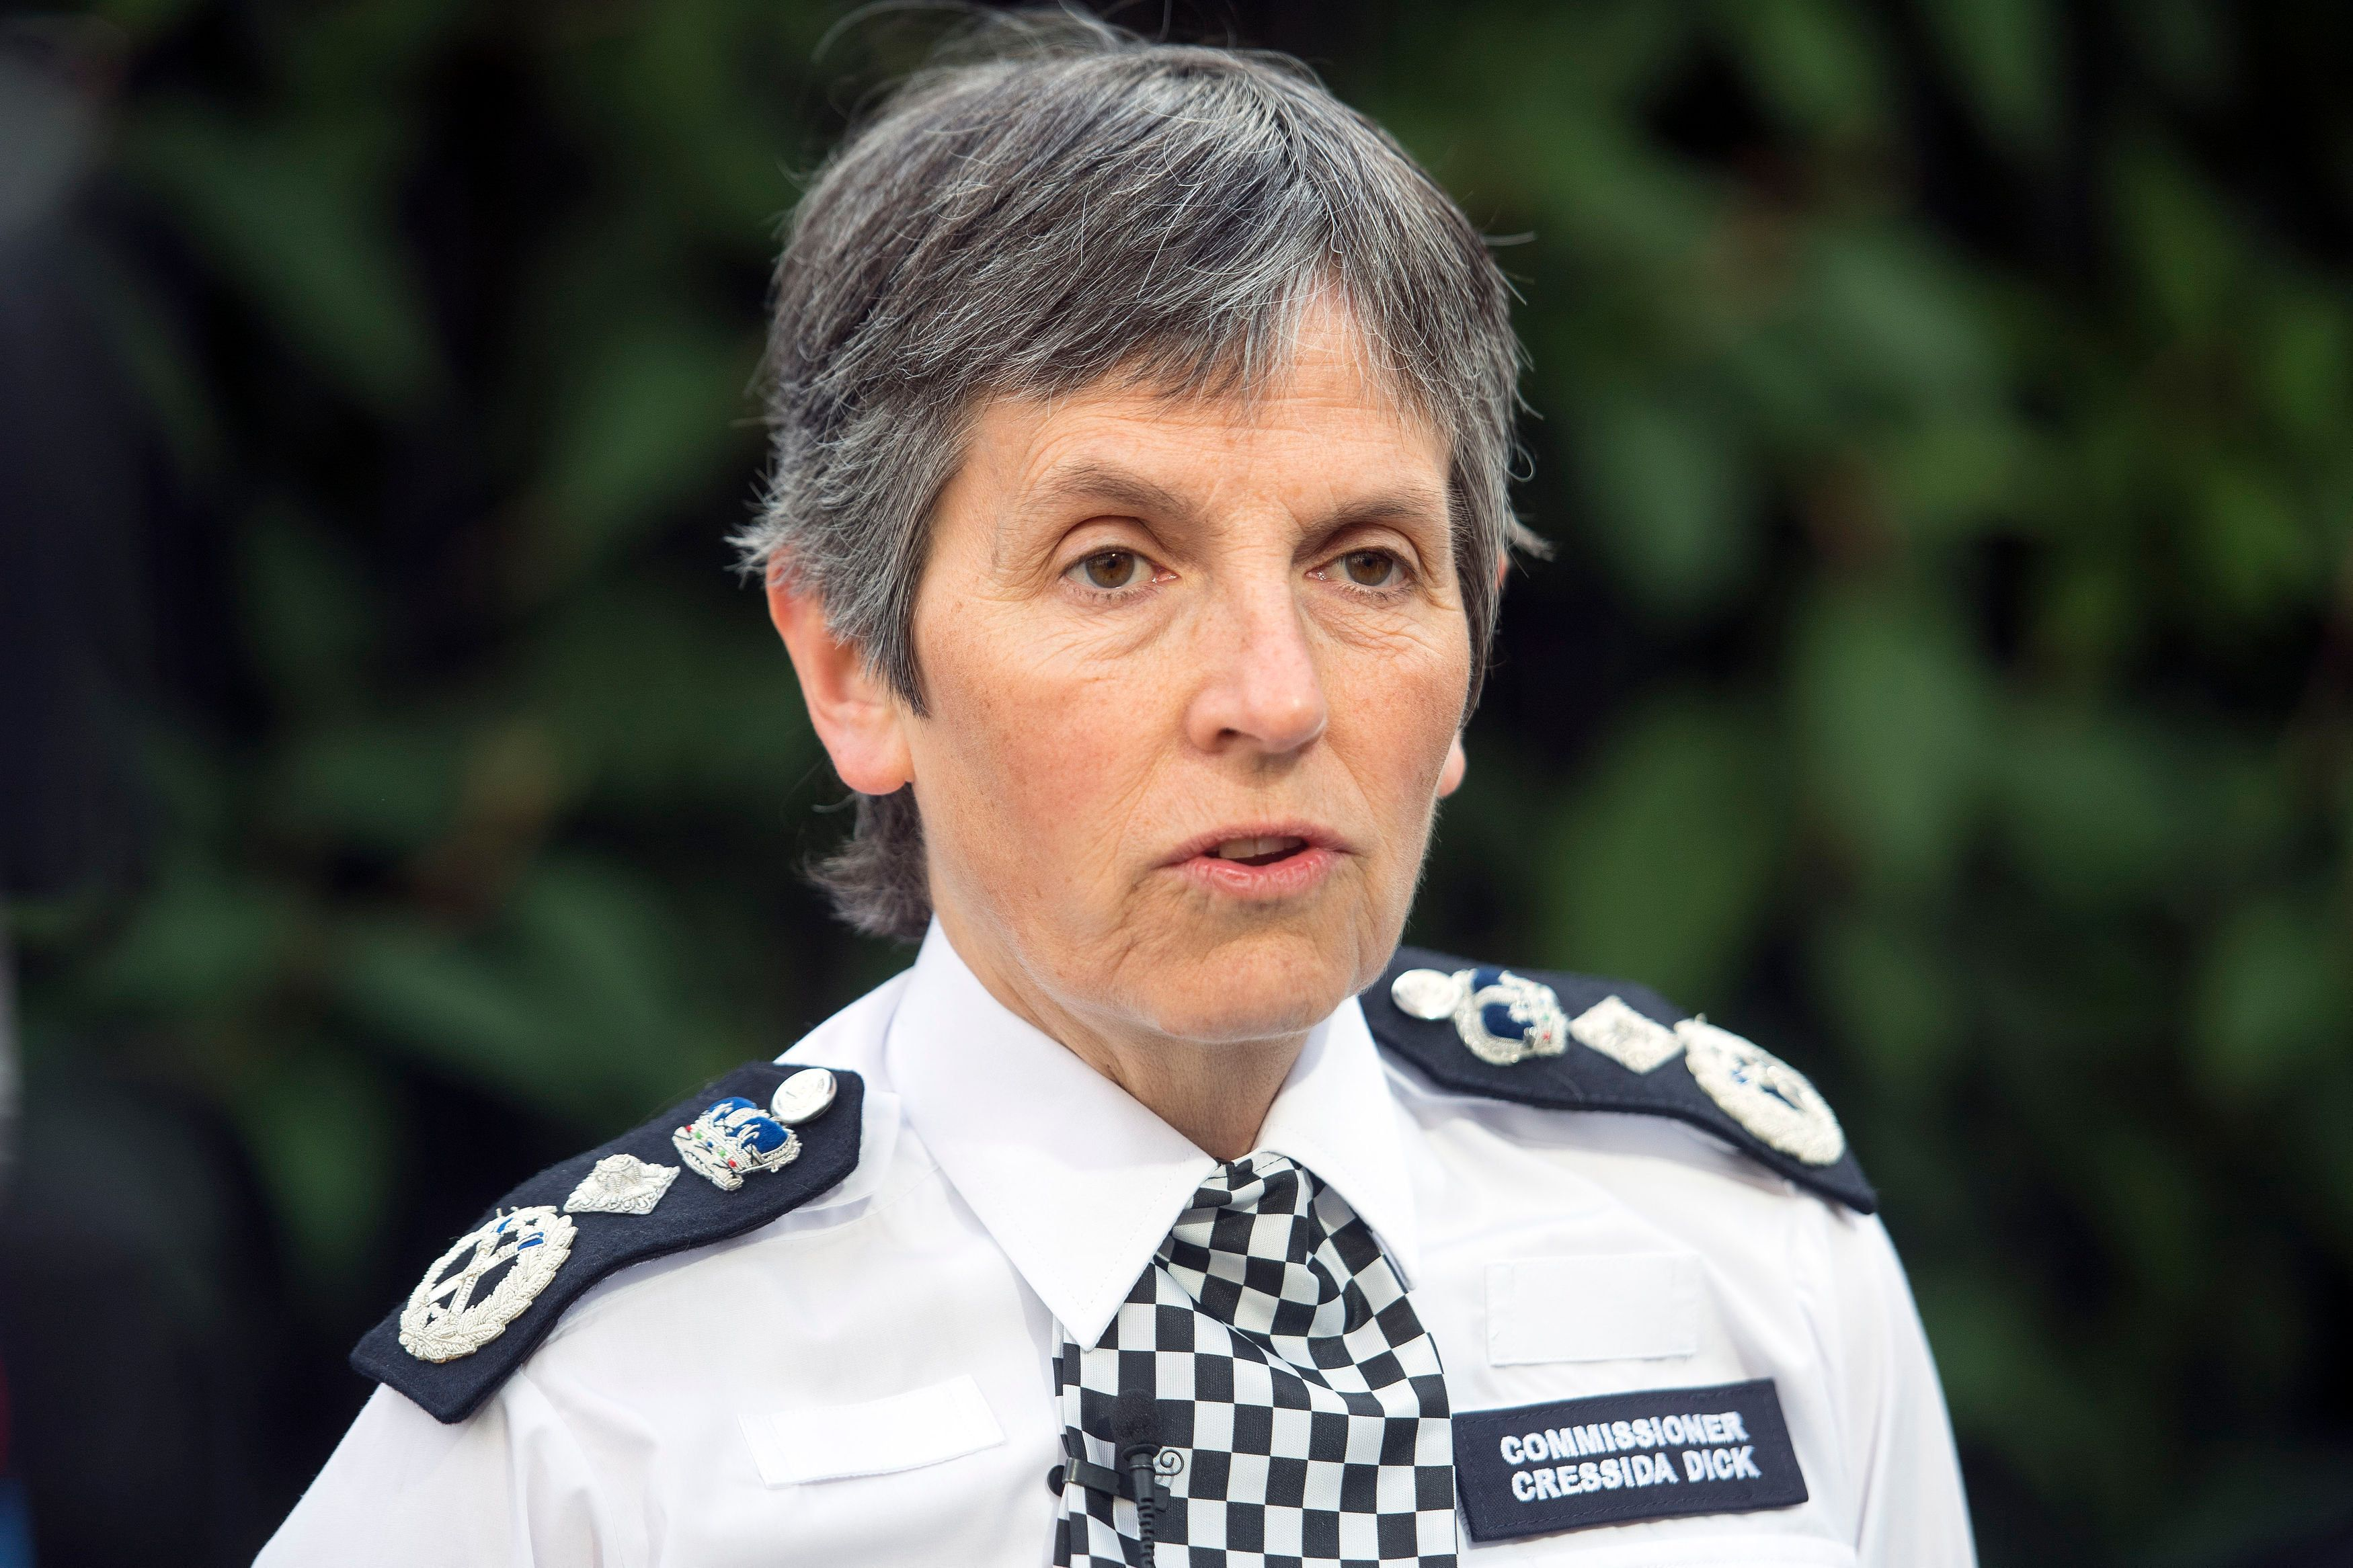 Grenfell Criminal Investigation Could Take Years, Met Police Chief